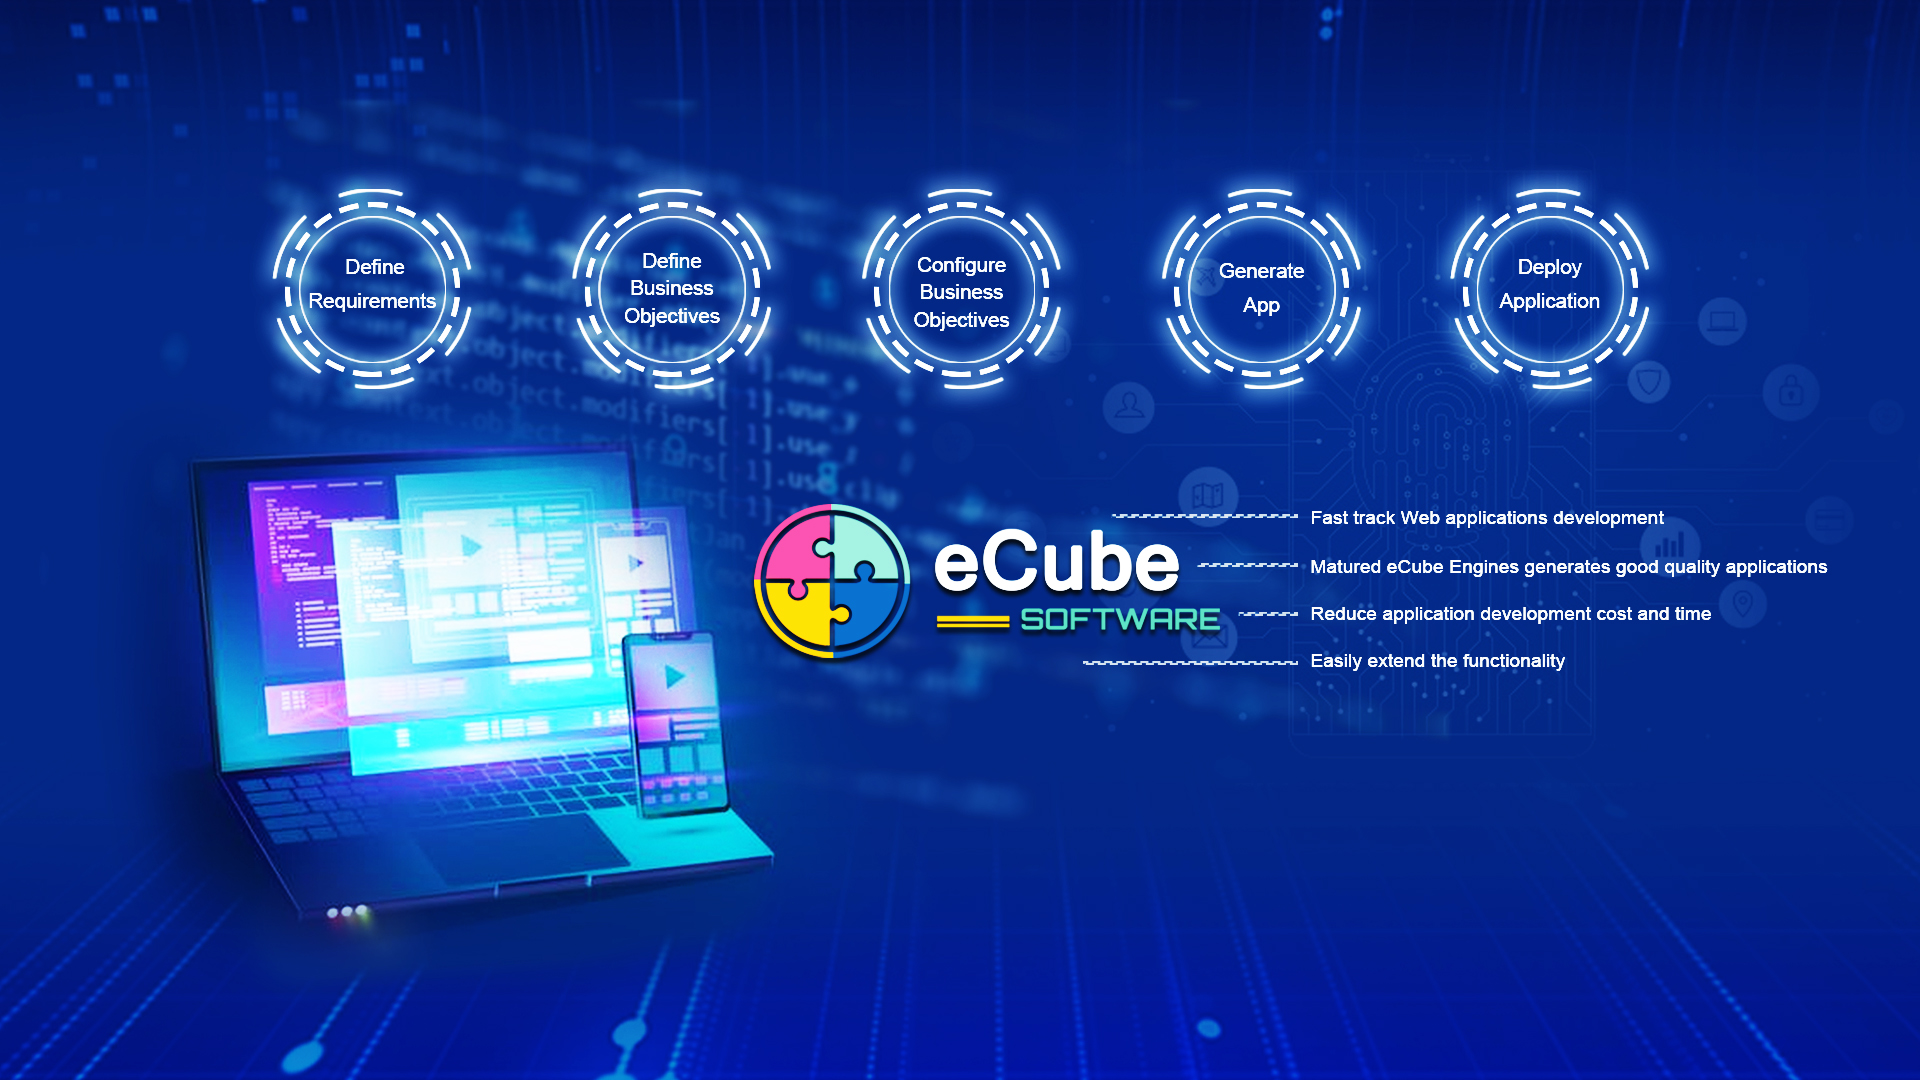 eCube Software